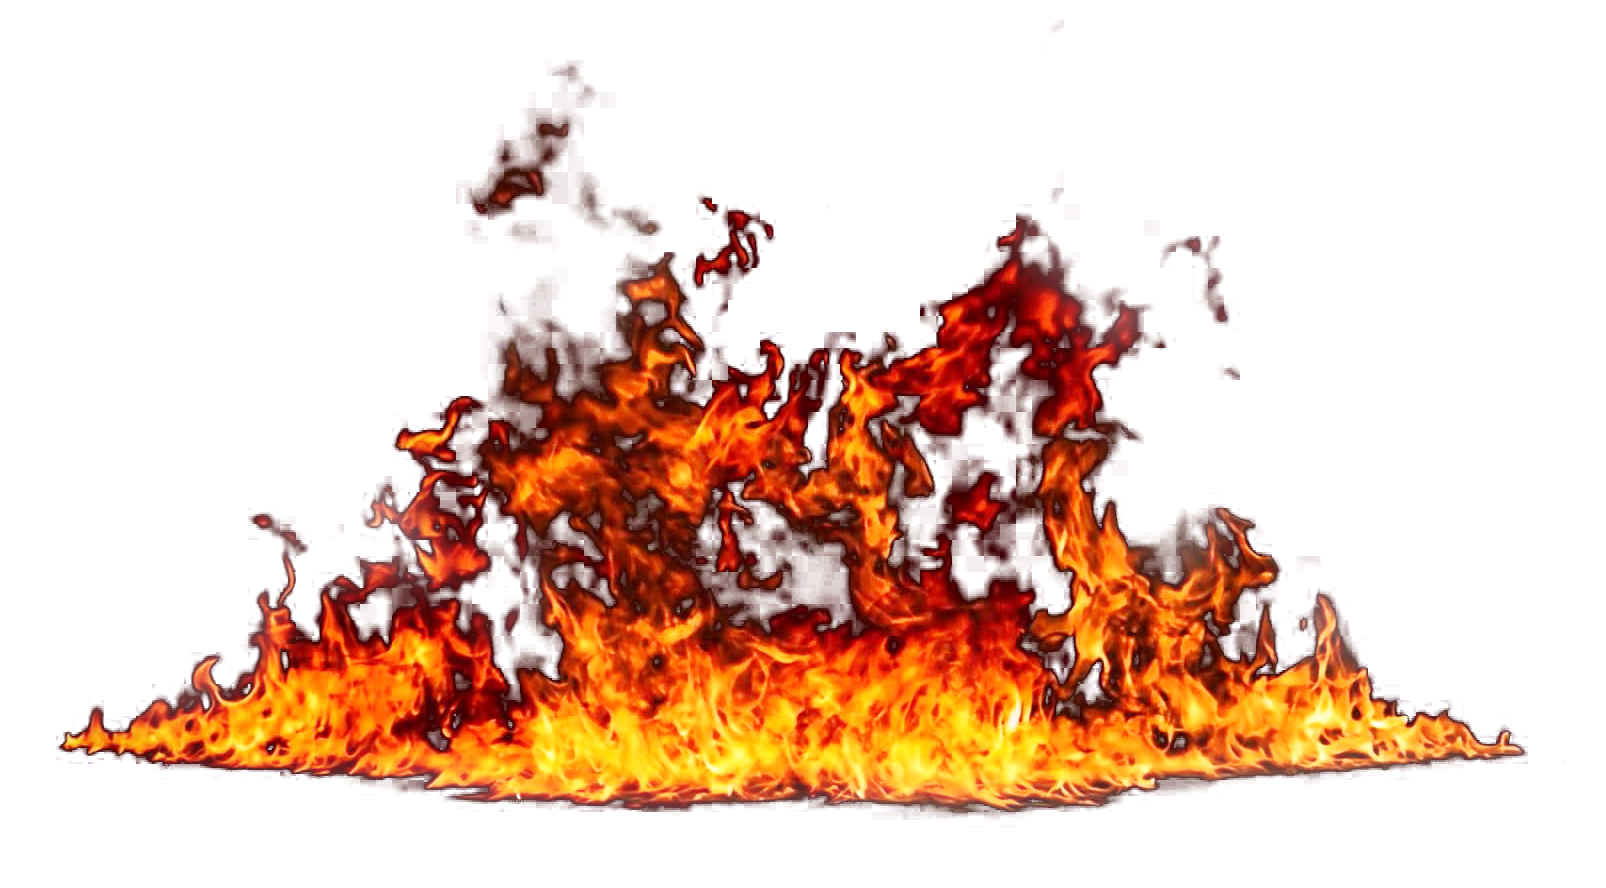 Flame png image purepng. Flames clipart big fire